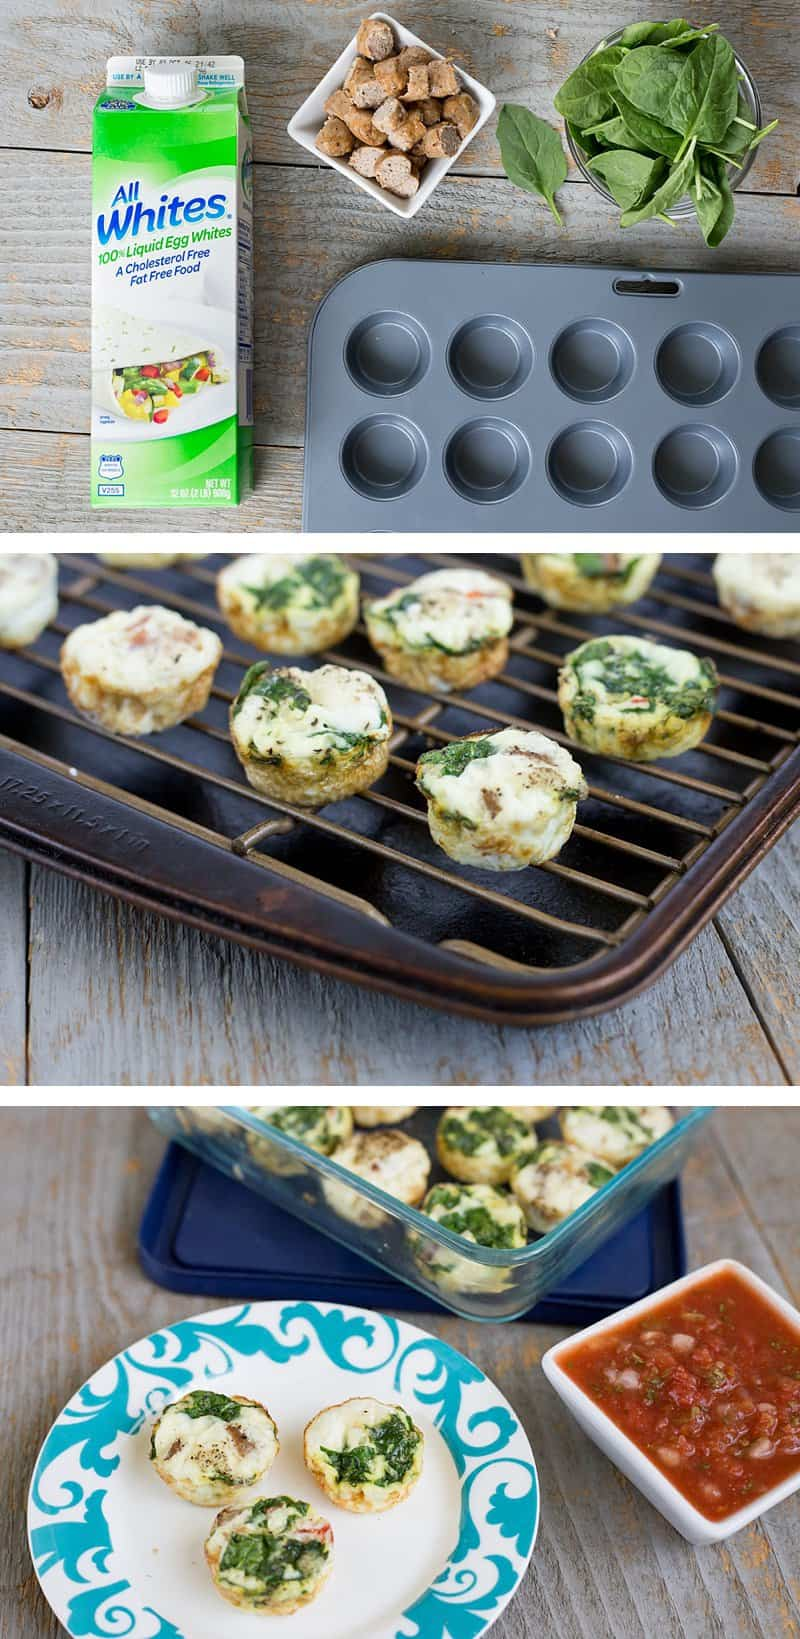 This Sausage & Spinach Egg White Muffin Bites recipe is packed full of protein, gluten-free, paleo-friendly and is a quick on-the-go breakfast snack. You can make one batch to last a full week. *Insanely easy way to start your day with eggs